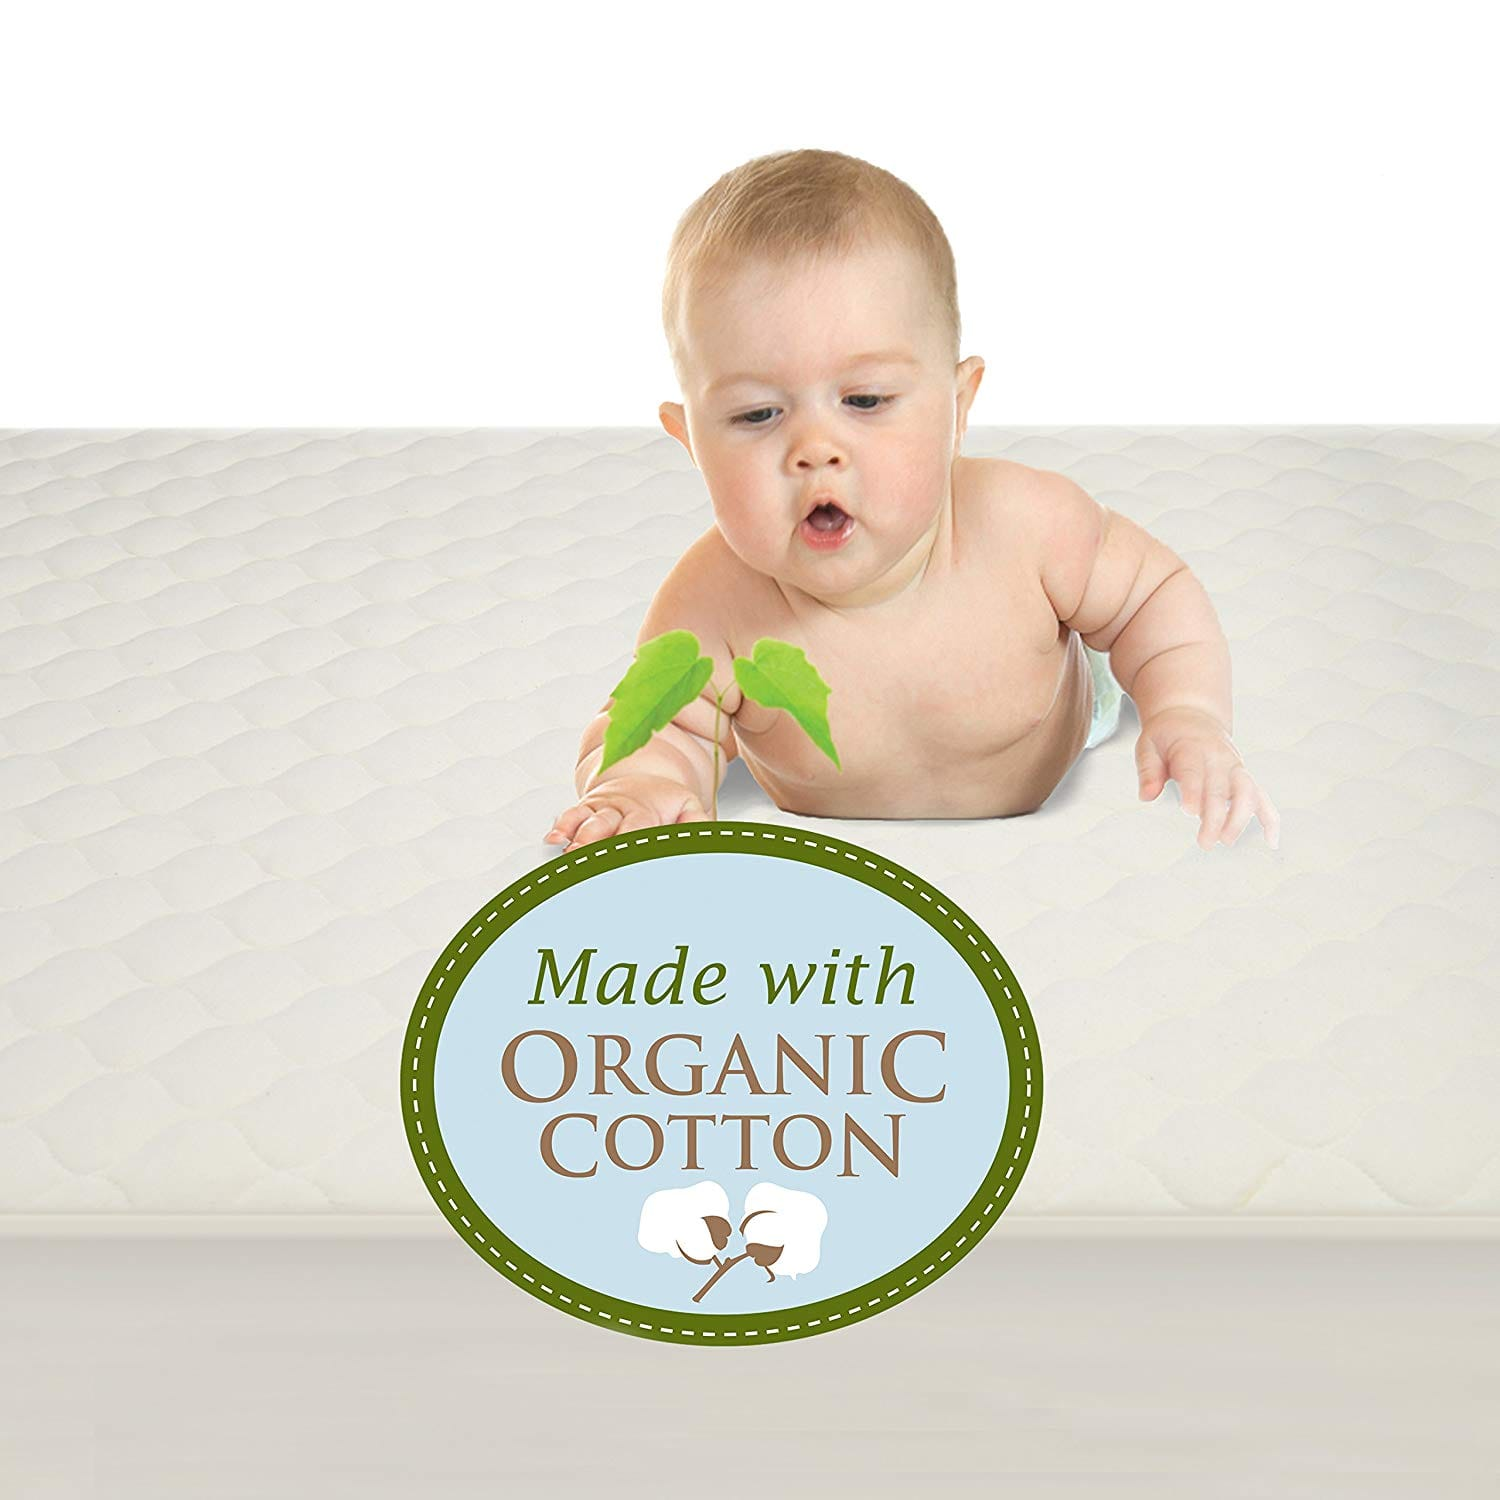 ccd88ddb2cdf4 American Baby Company Waterproof Crib and Toddler Mattress Cover ...